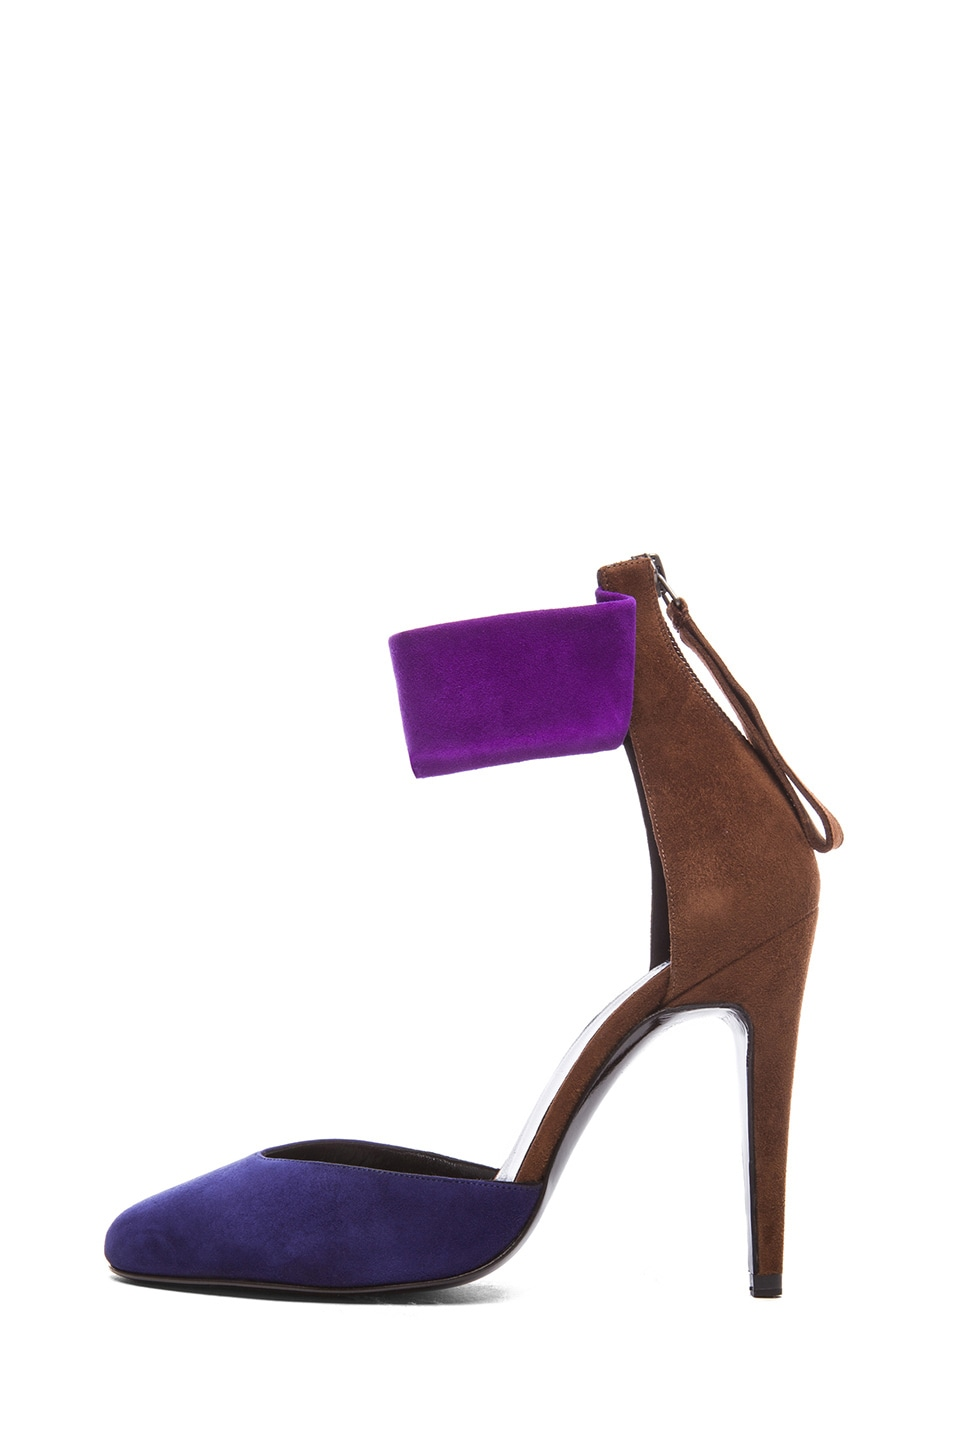 Image 1 of Pierre Hardy Altissimo Kid Suede Heels in Trico Blue